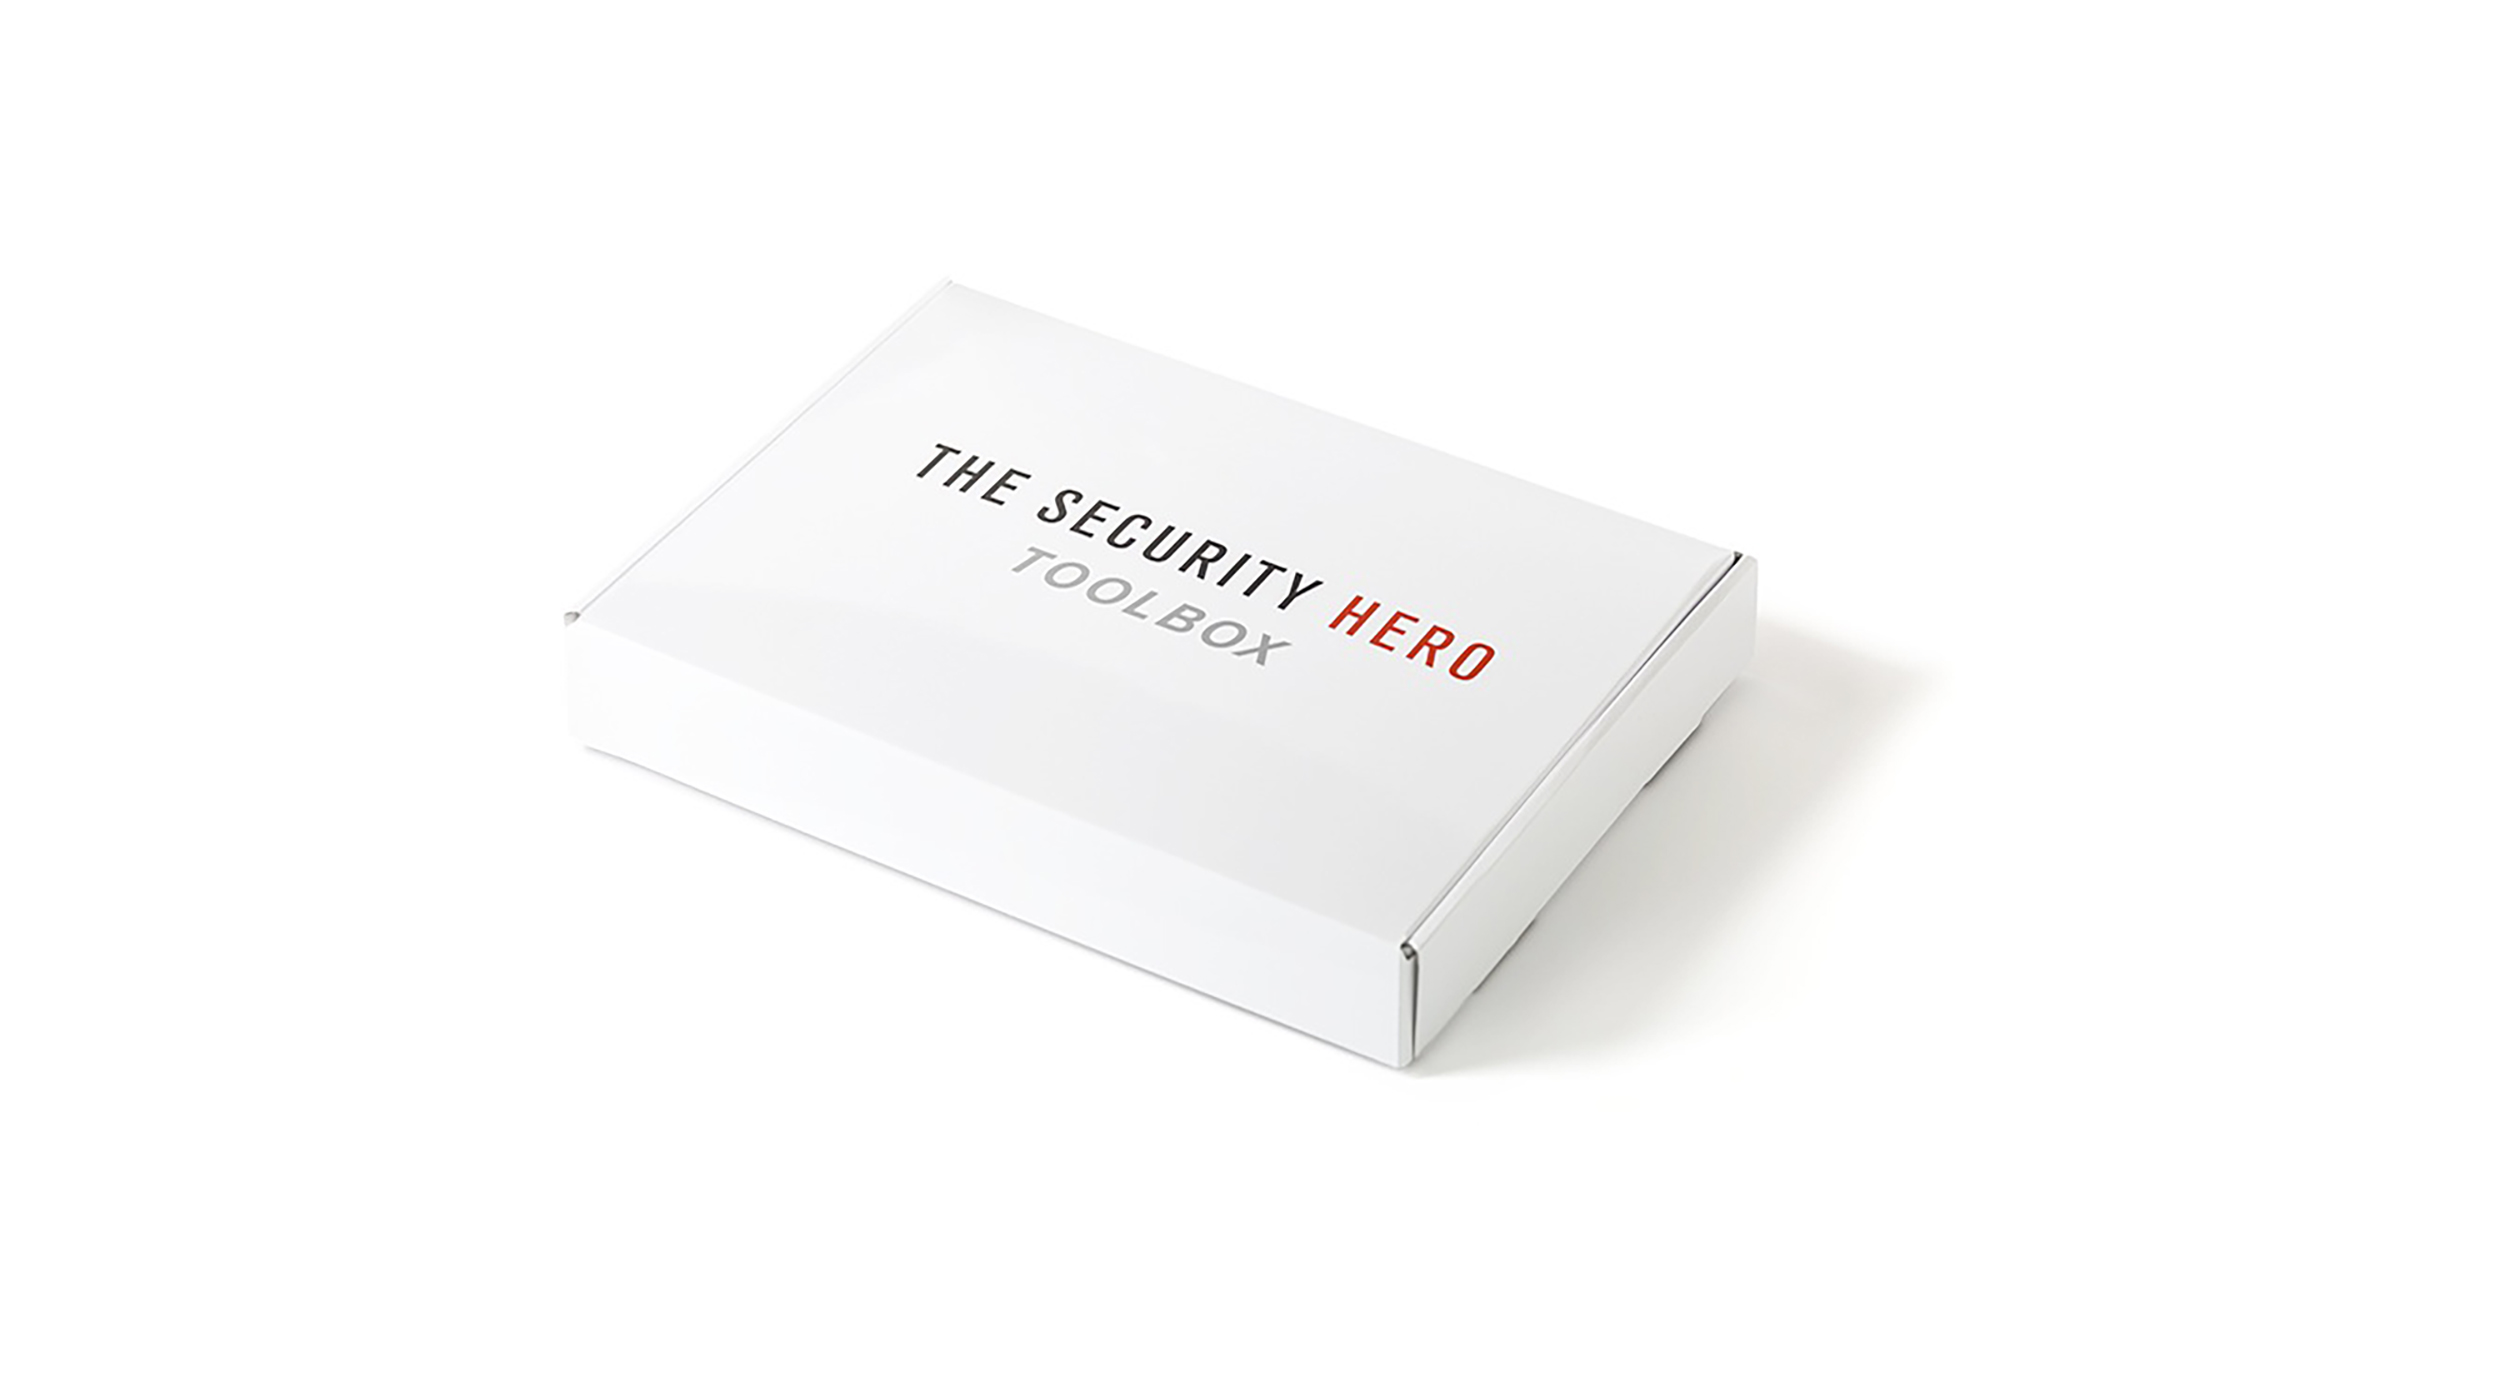 How to become a security hero